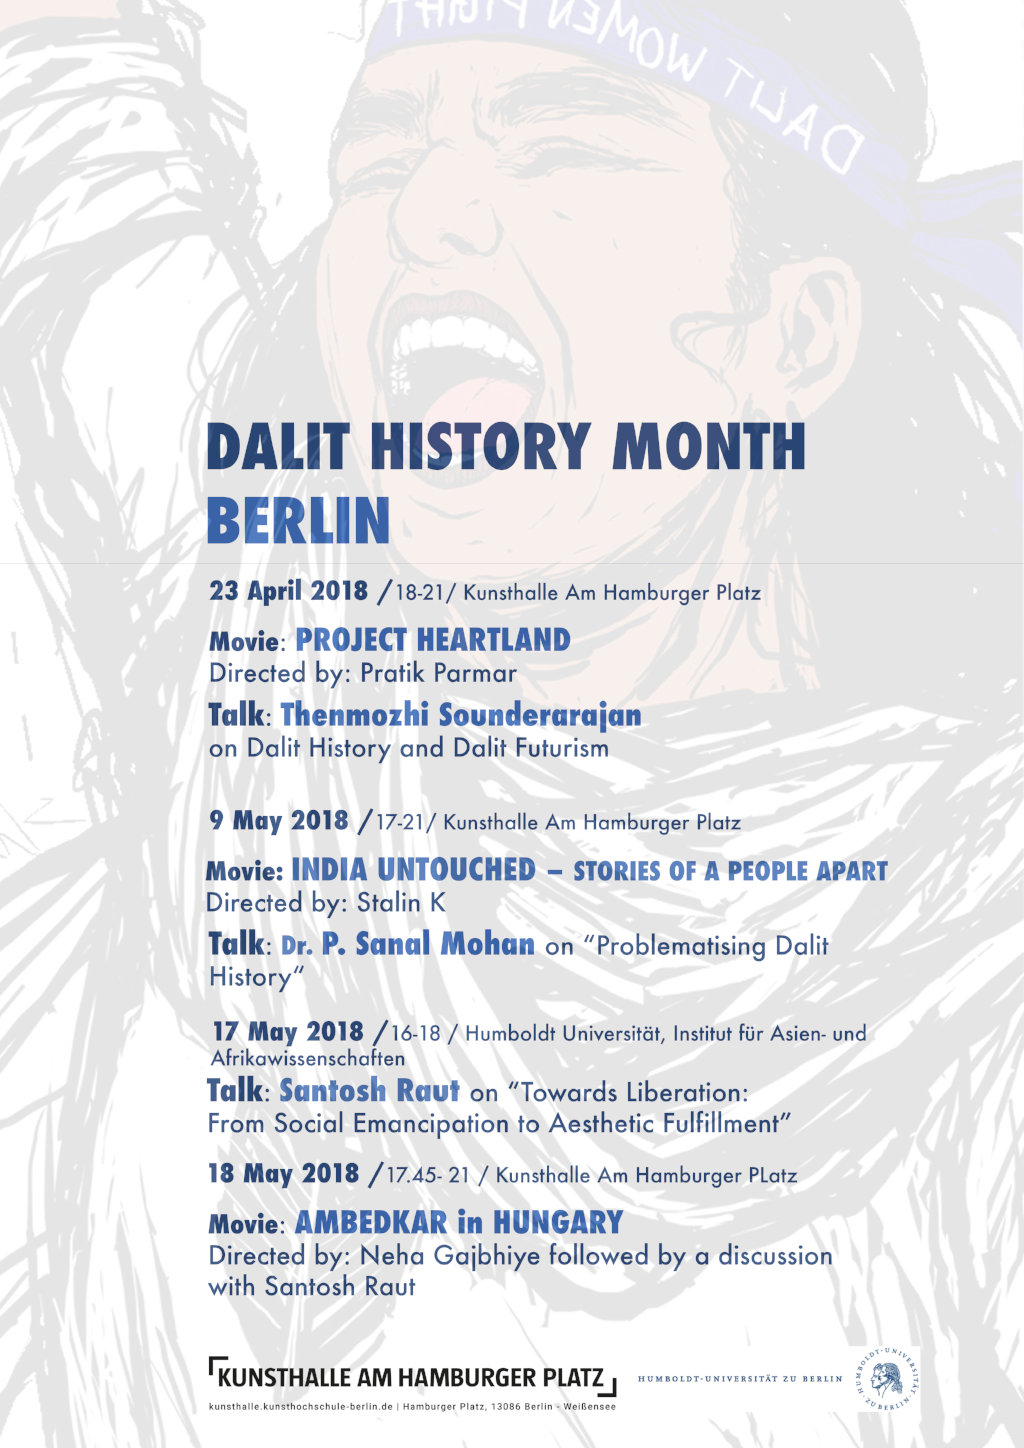 Dalit History Month Berlin